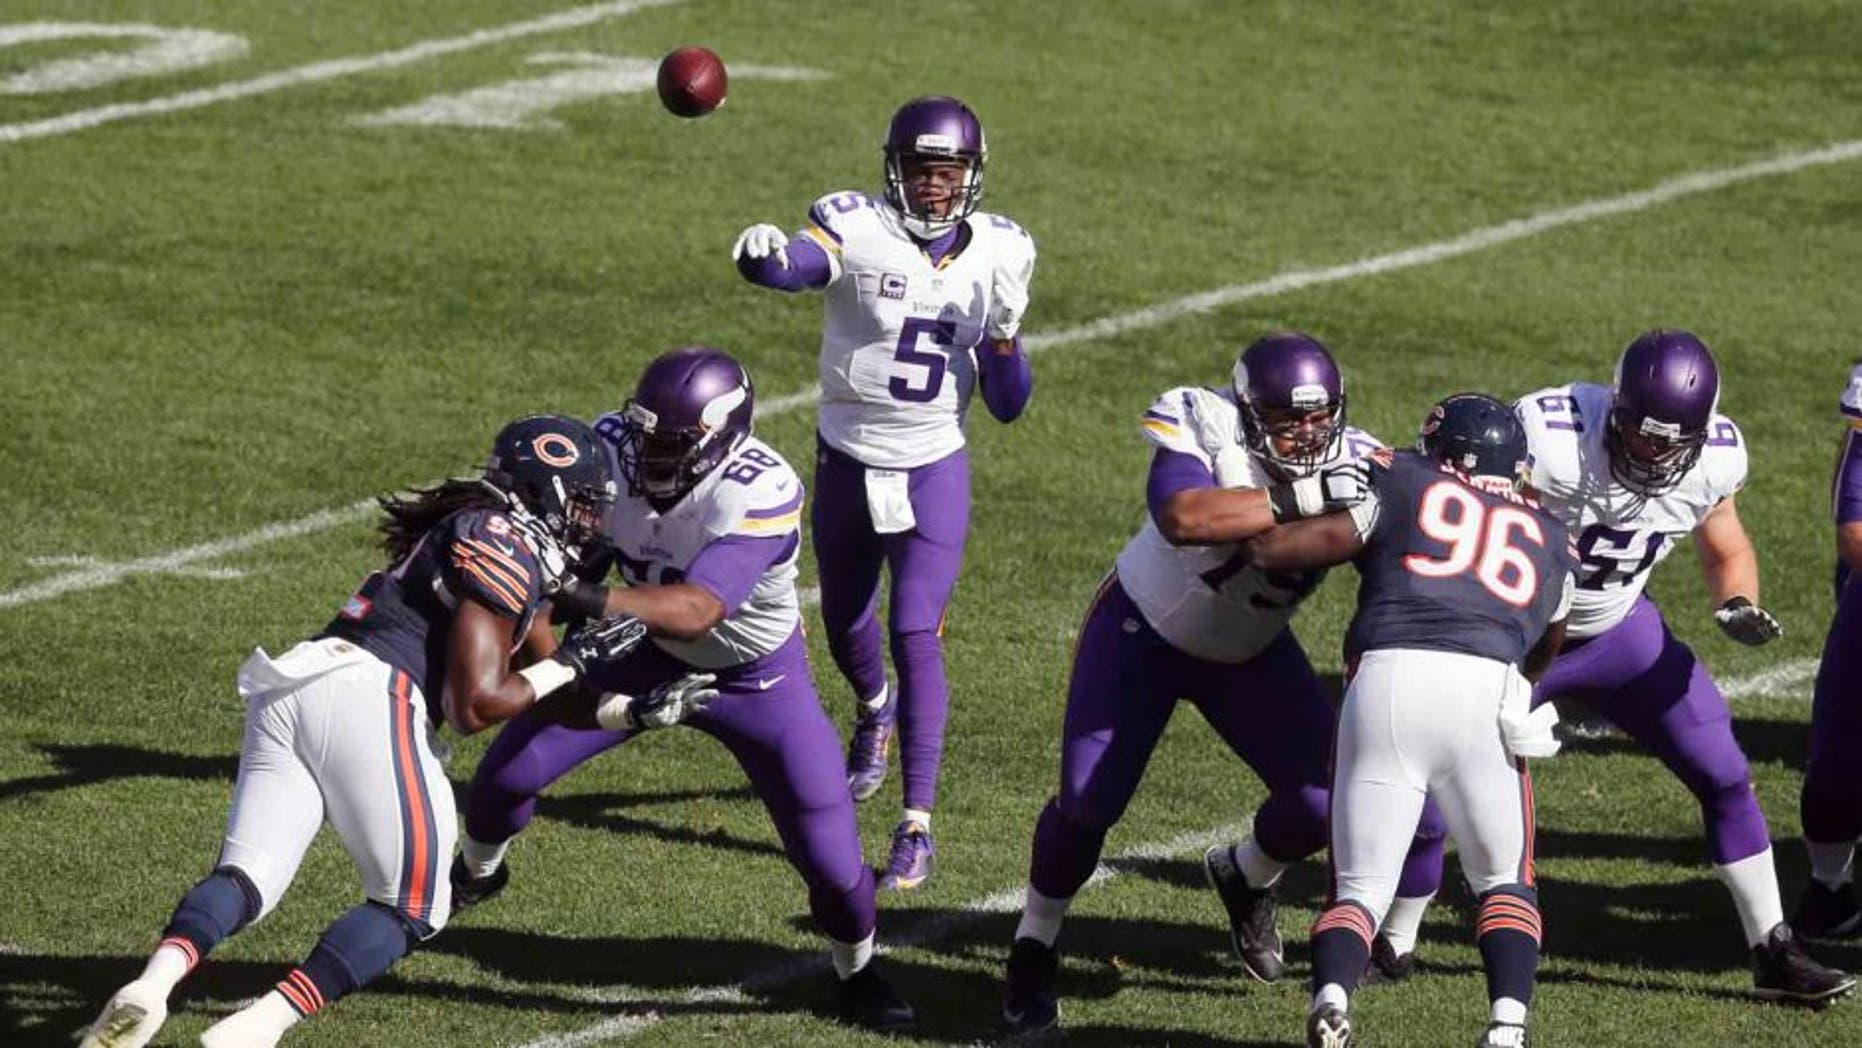 Minnesota Vikings quarterback Teddy Bridgewater throws a pass against the Chicago Bears during the first half of an NFL football game Sunday, Nov. 1, 2015, in Chicago.